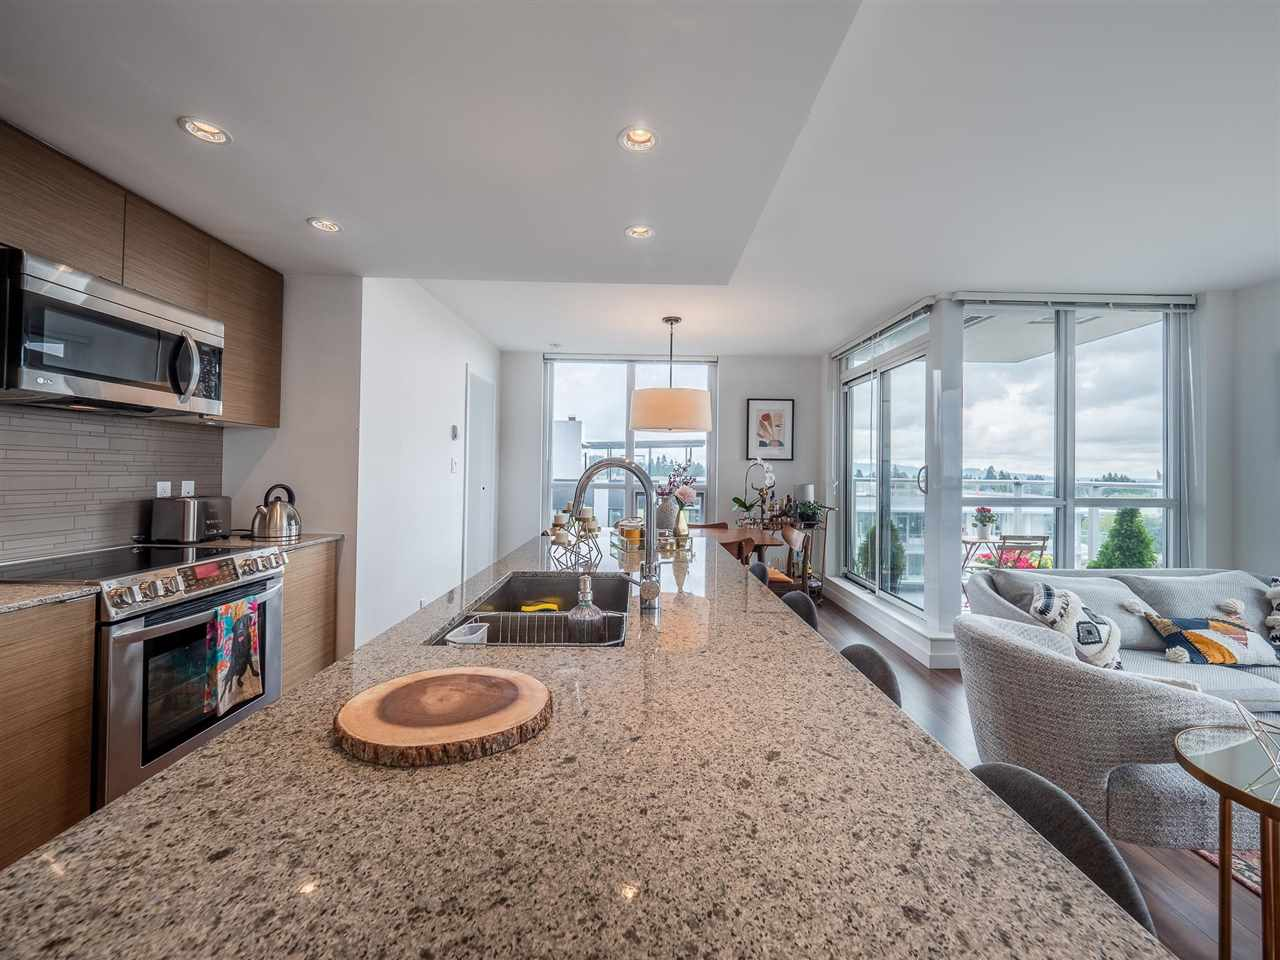 1607 135 E 17TH STREET - Central Lonsdale Apartment/Condo for sale, 1 Bedroom (R2603489) - #6